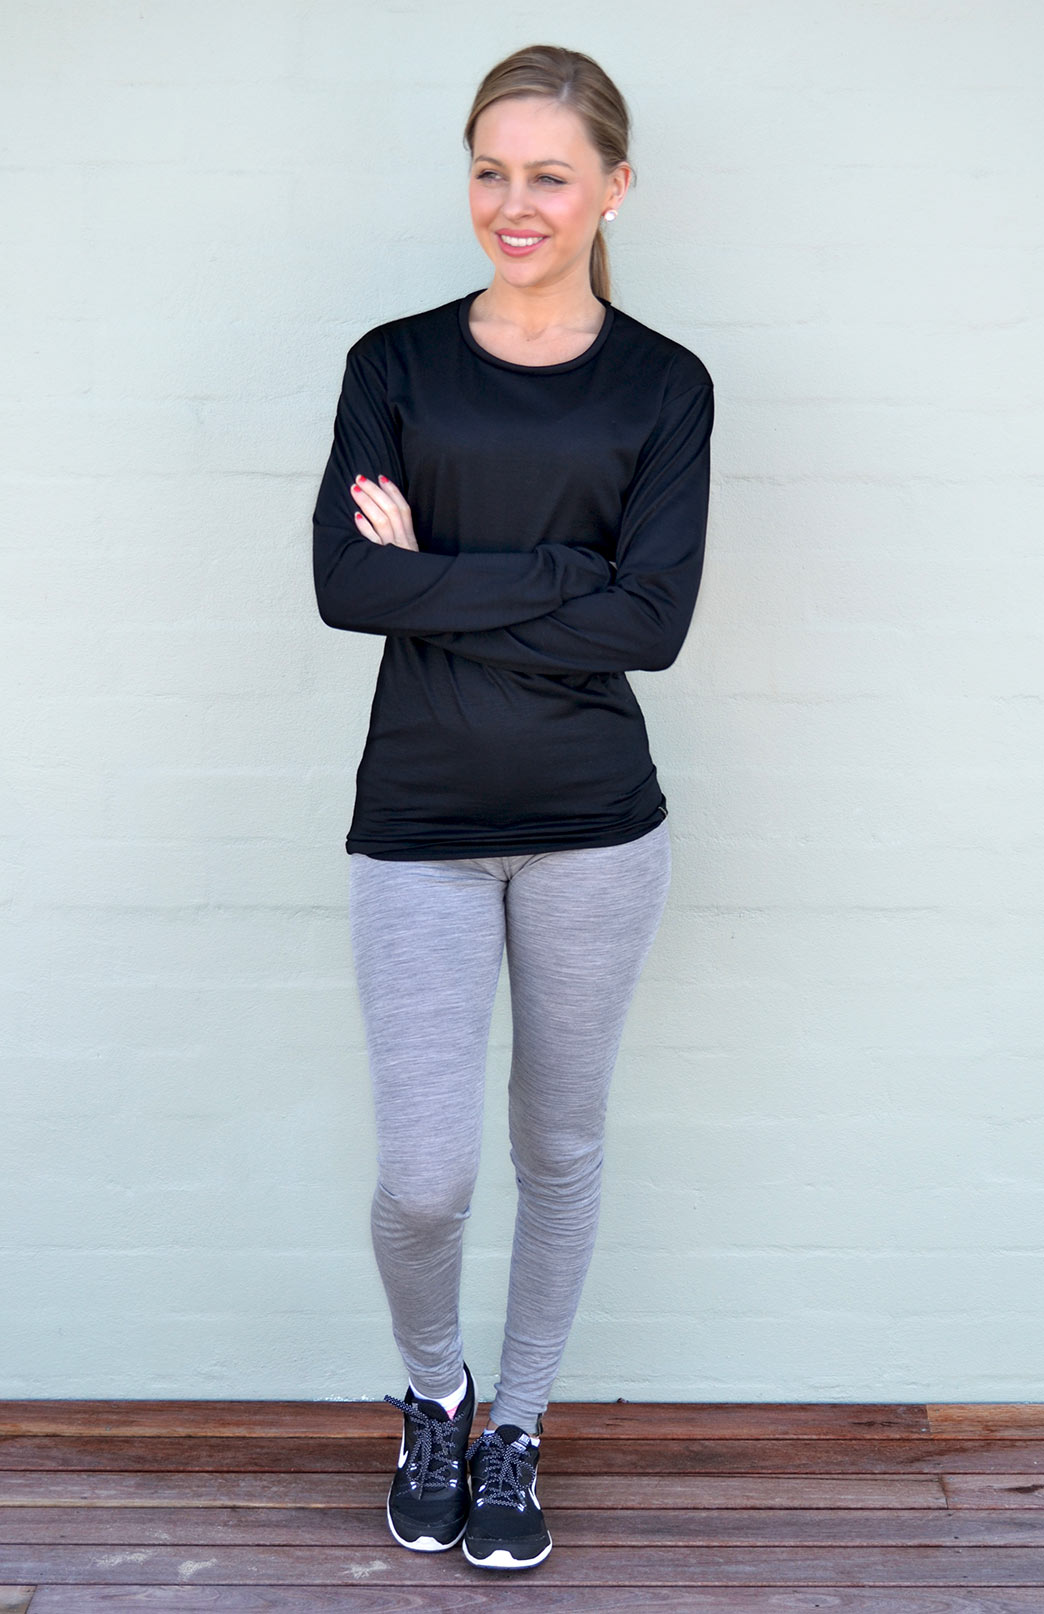 Long Sleeved Crew Neck Top - Heavyweight (360g) - Women's Black Heavyweight Long Sleeved Wool Crew Neck Top Pullover - Smitten Merino Tasmania Australia